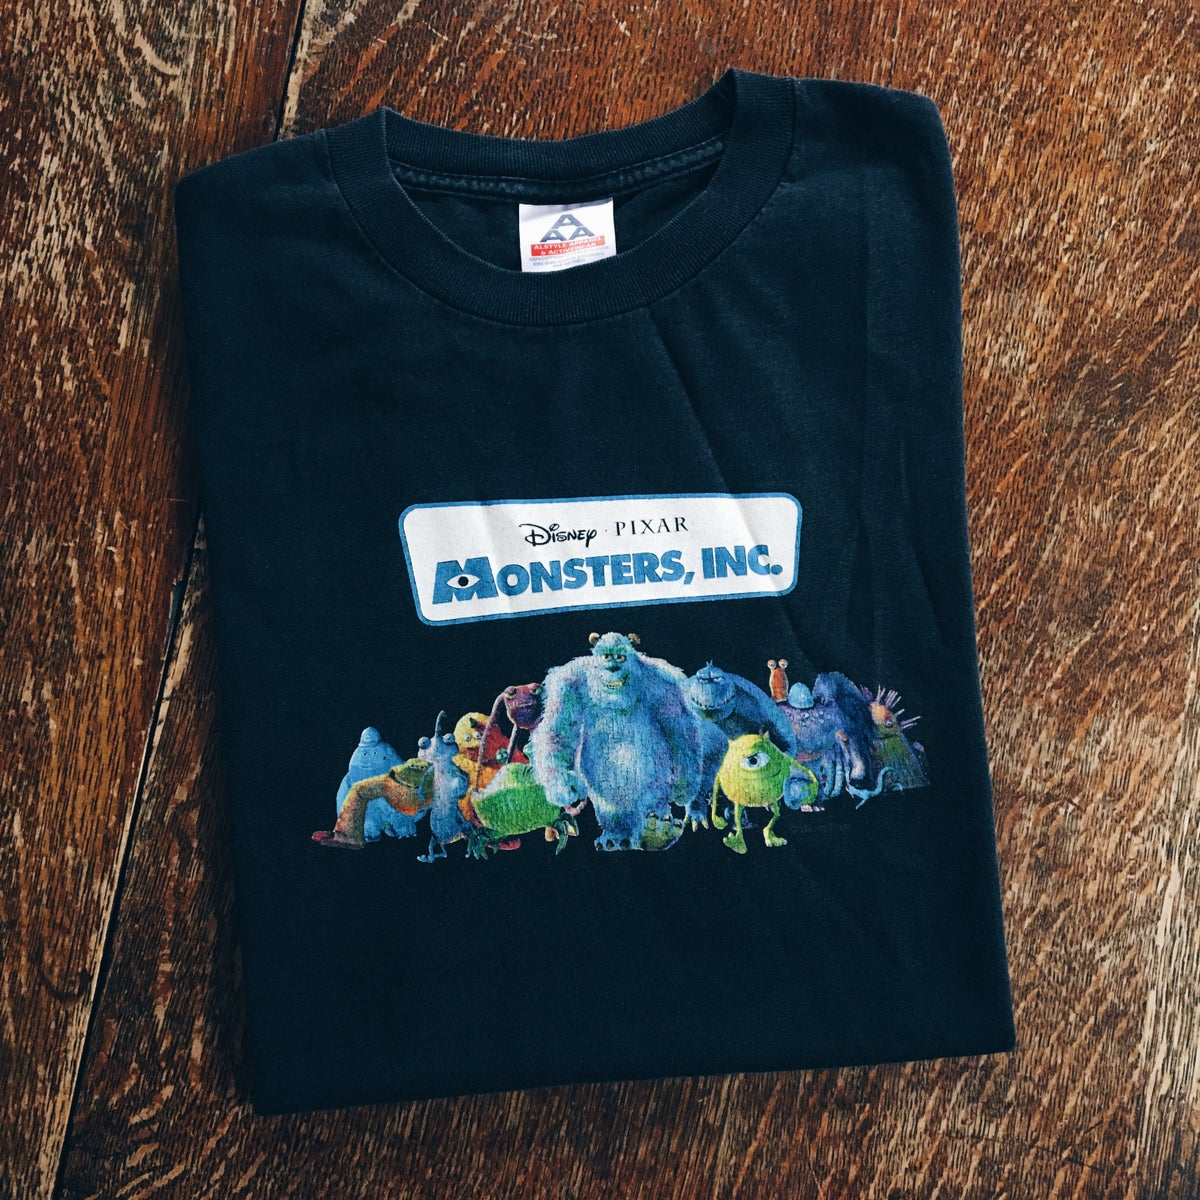 Image of Original 2001 Monsters, Inc. Hollywood Video Movie Promo Tee.